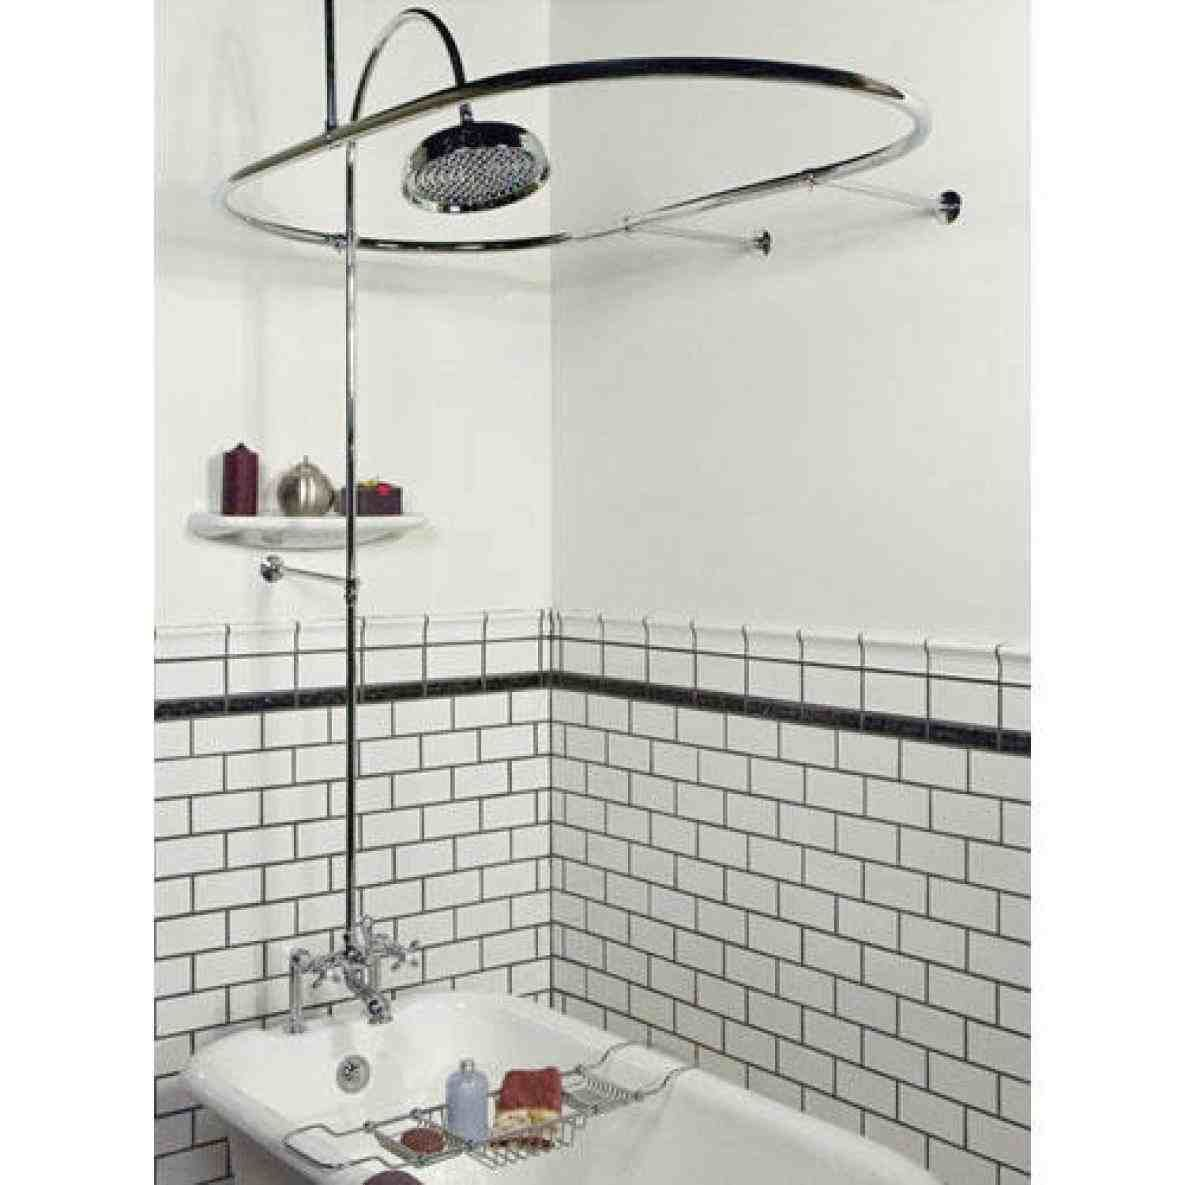 turn clawfoot tub into shower. This Clawfoot Tub Shower Conversion Kit  Bathroom Interior Ideas Furniture Bathtubs And Lessons Learned Full Size Of Turn